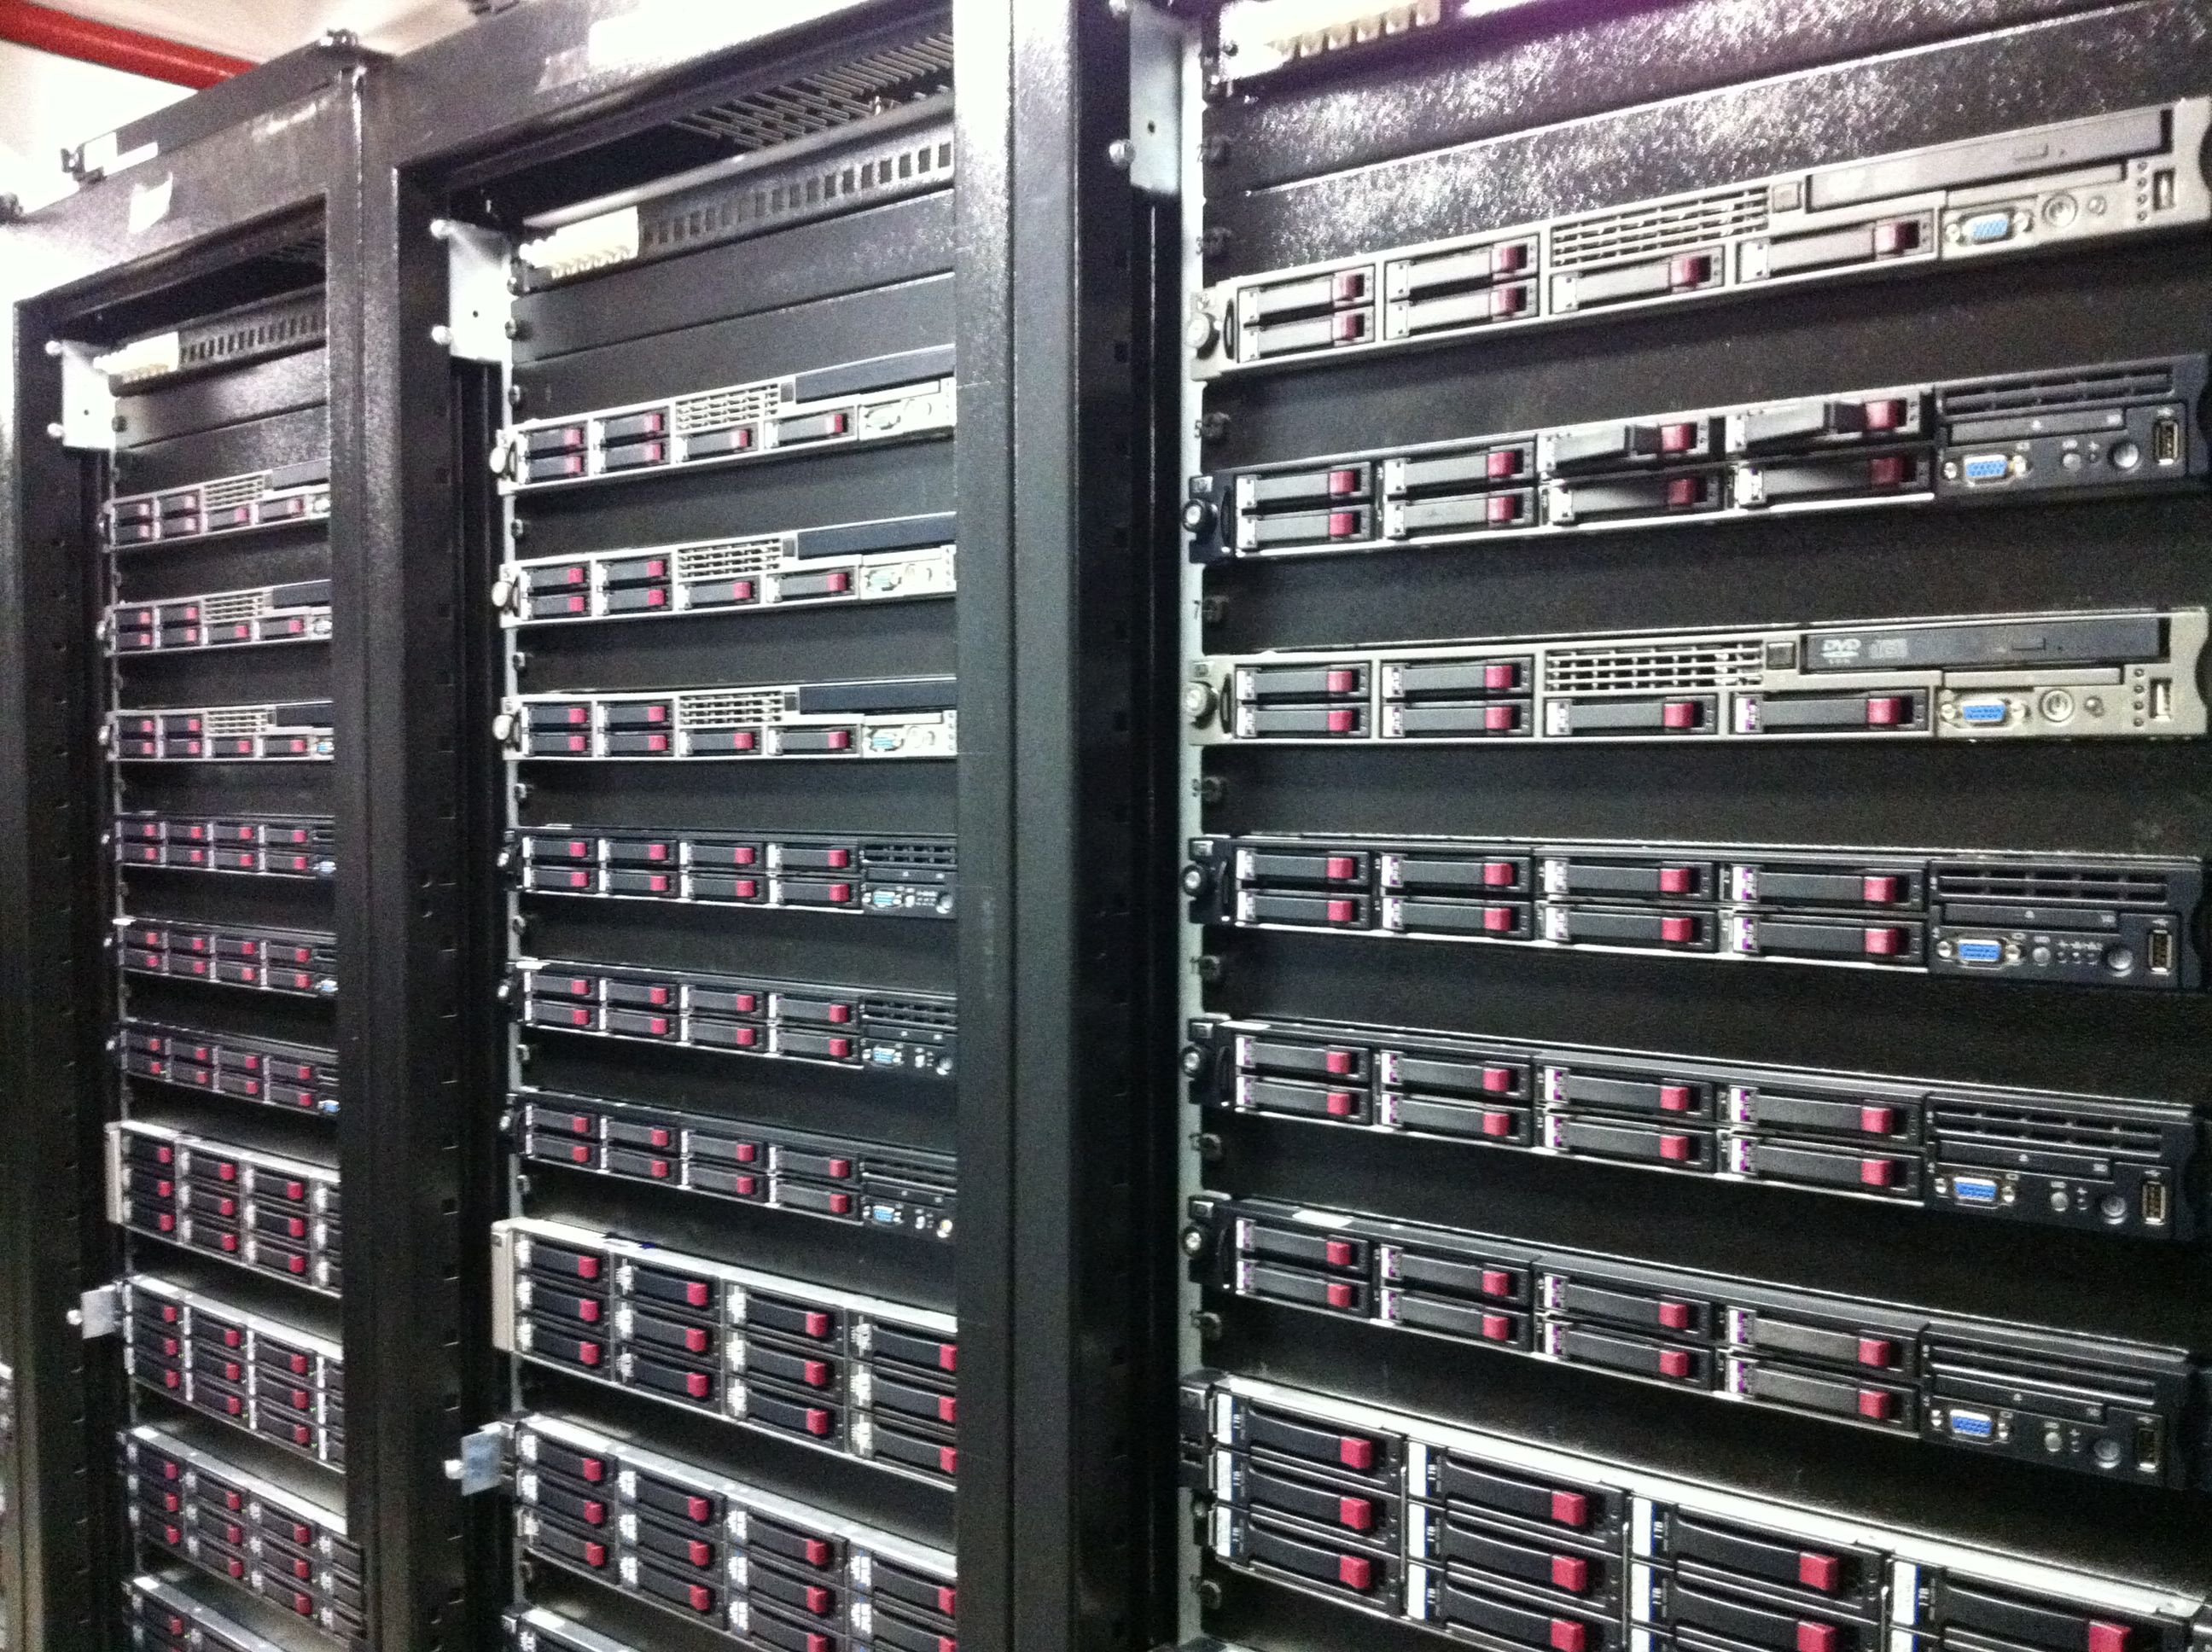 A view inside Mimecast's current data center in South Africa